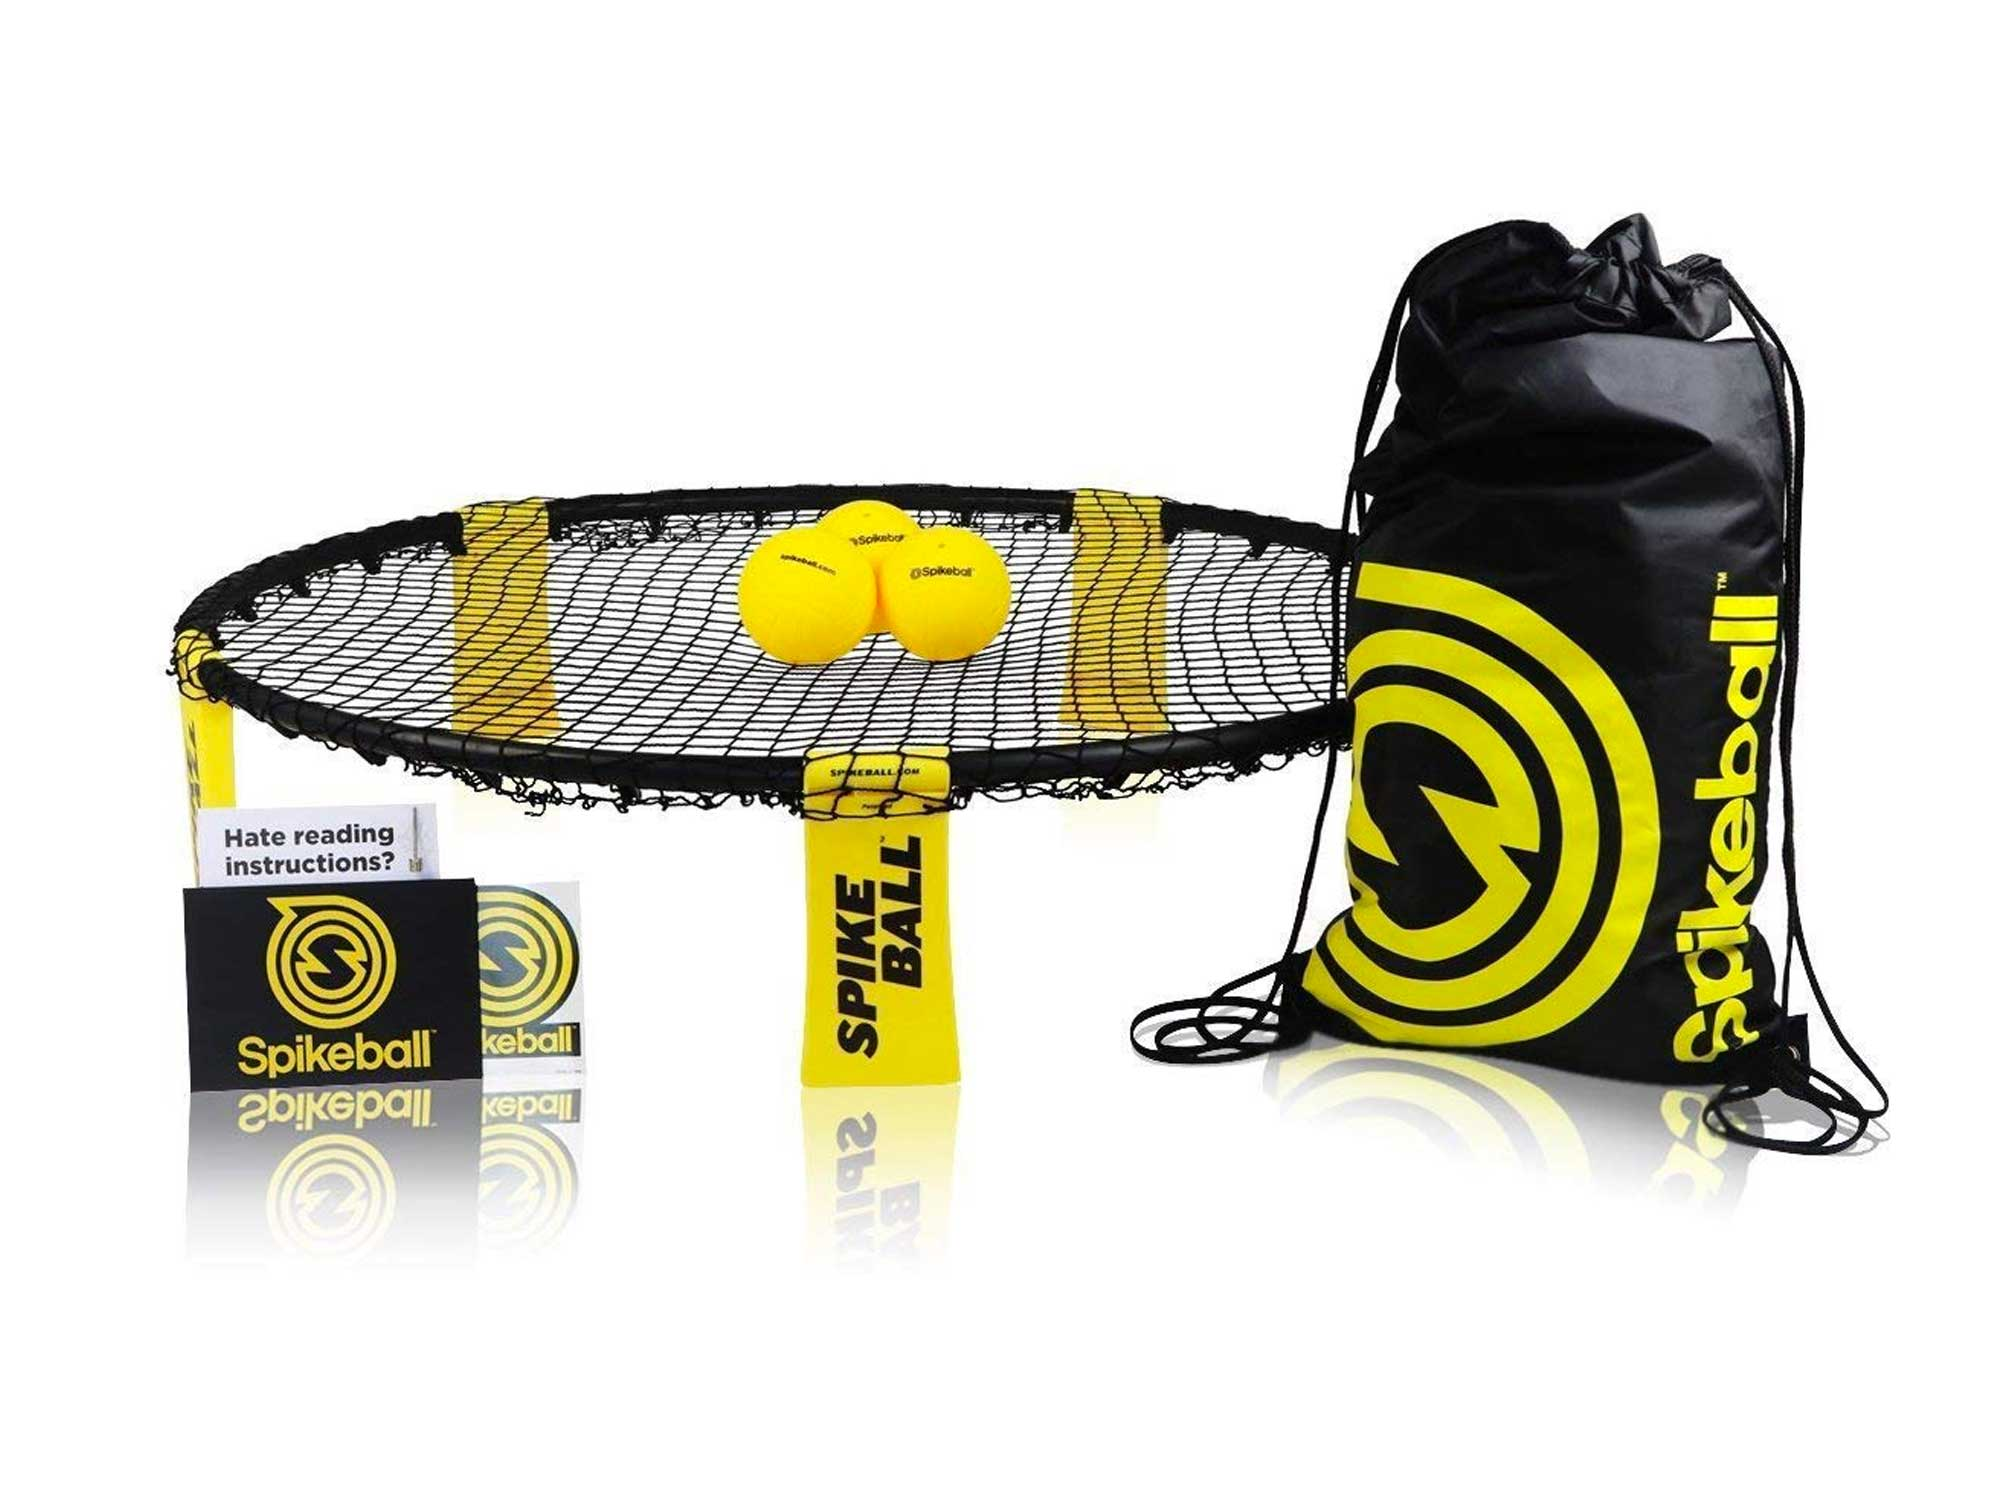 Spikeball Standard 3 Ball Kit - Includes Playing Net, 3 Balls, Drawstring Bag, Rule Book